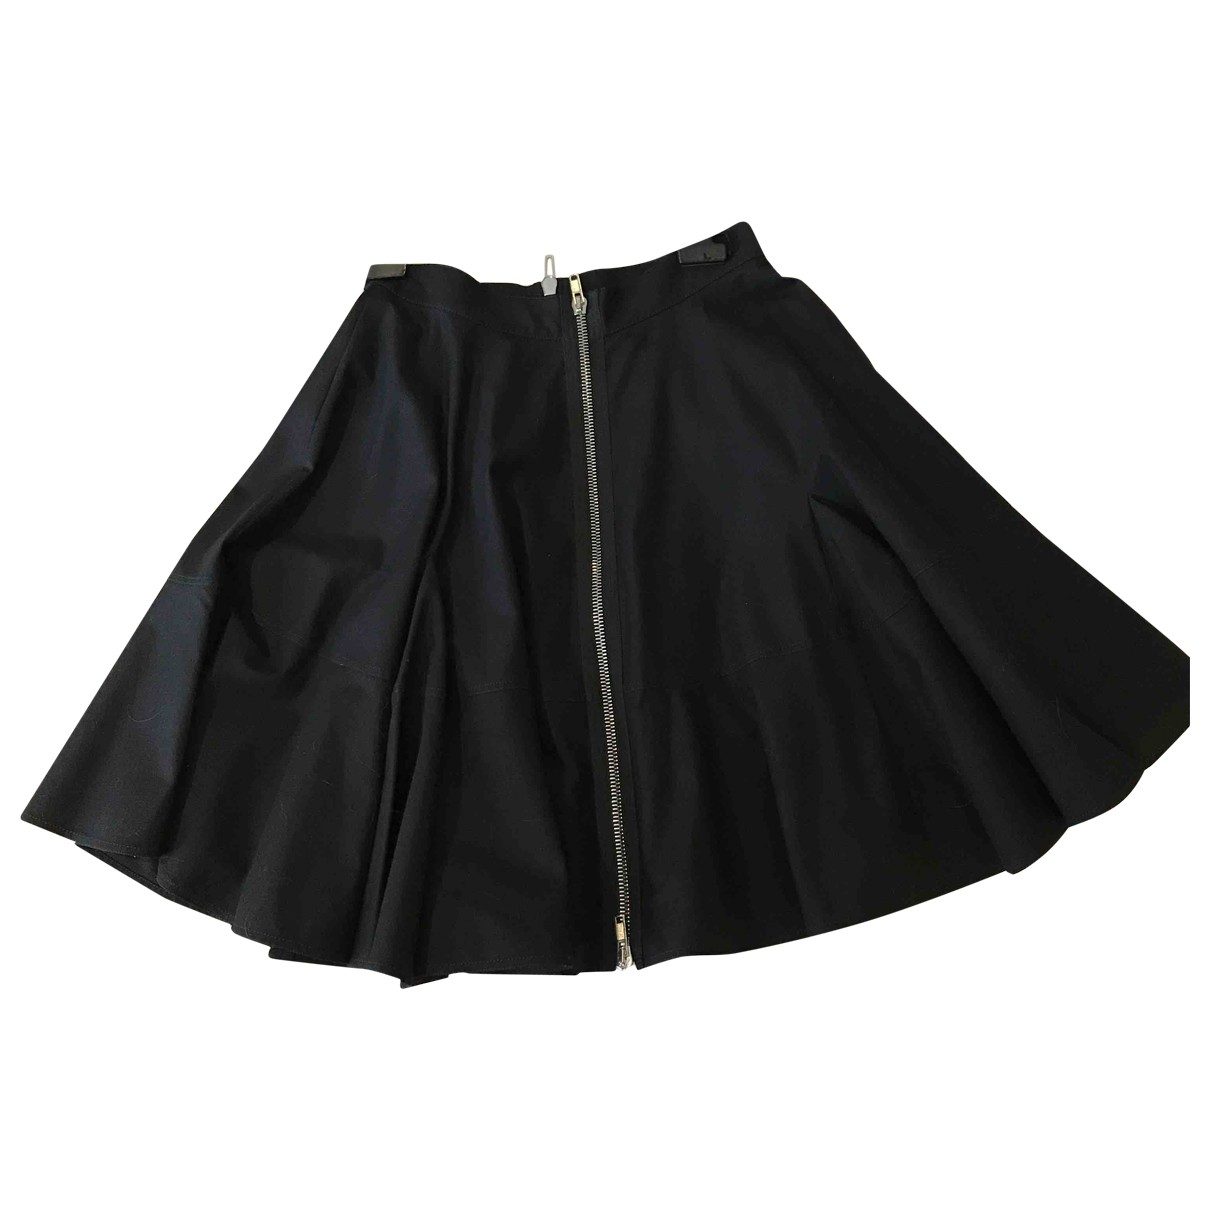 Givenchy \N Black Cotton - elasthane skirt for Women 42 FR